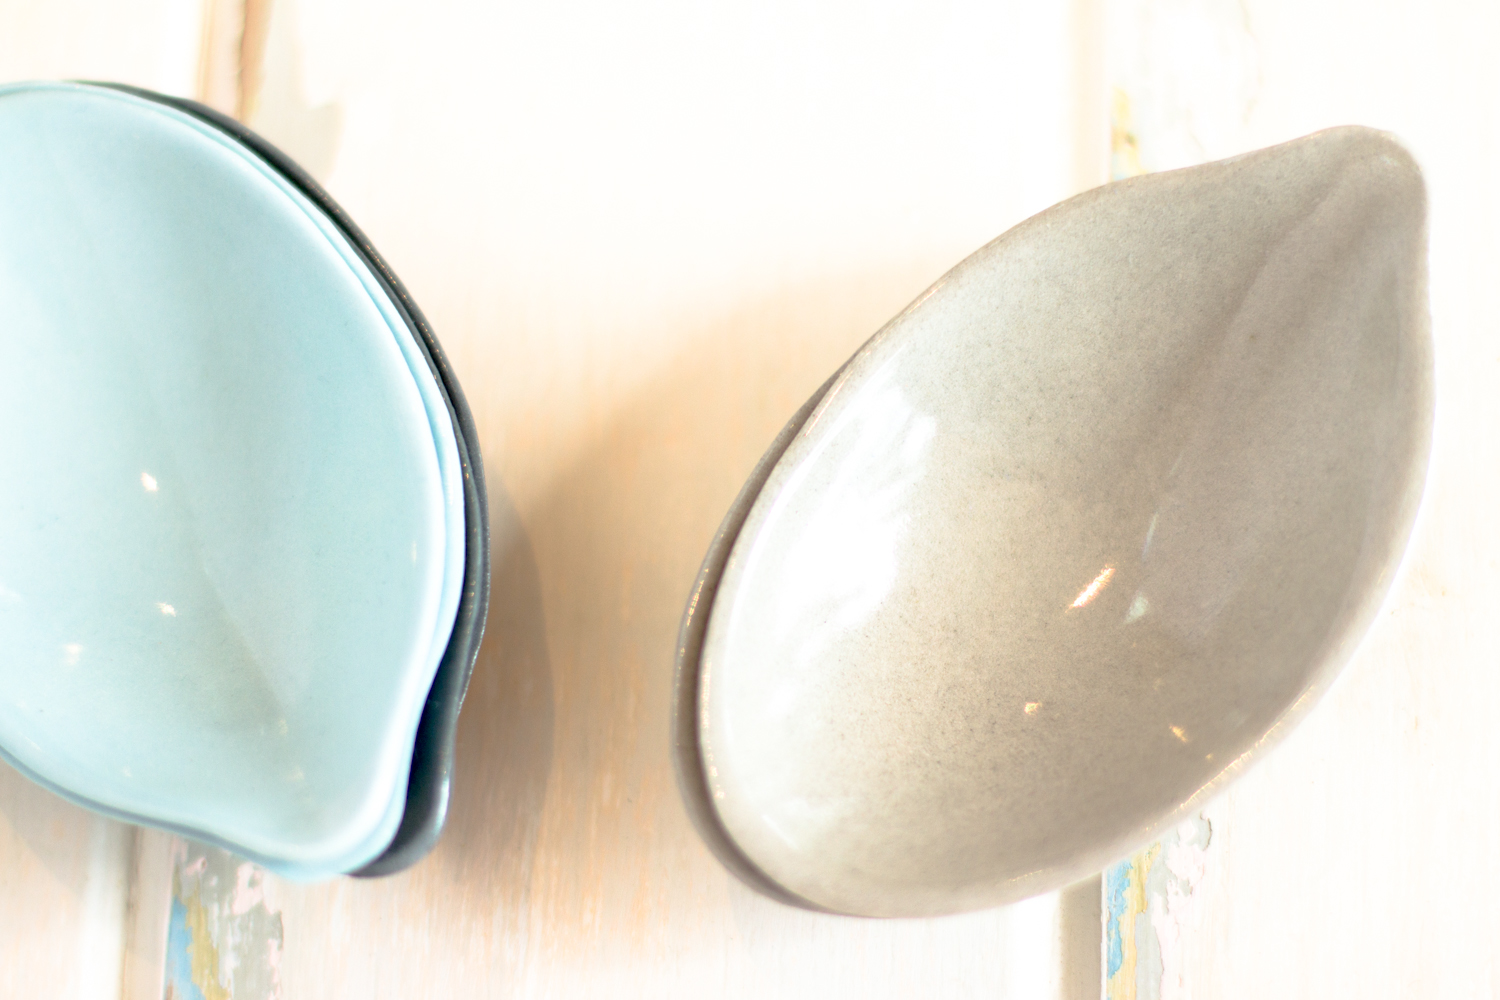 Ceramic serving scoops by Pinky & Maurice